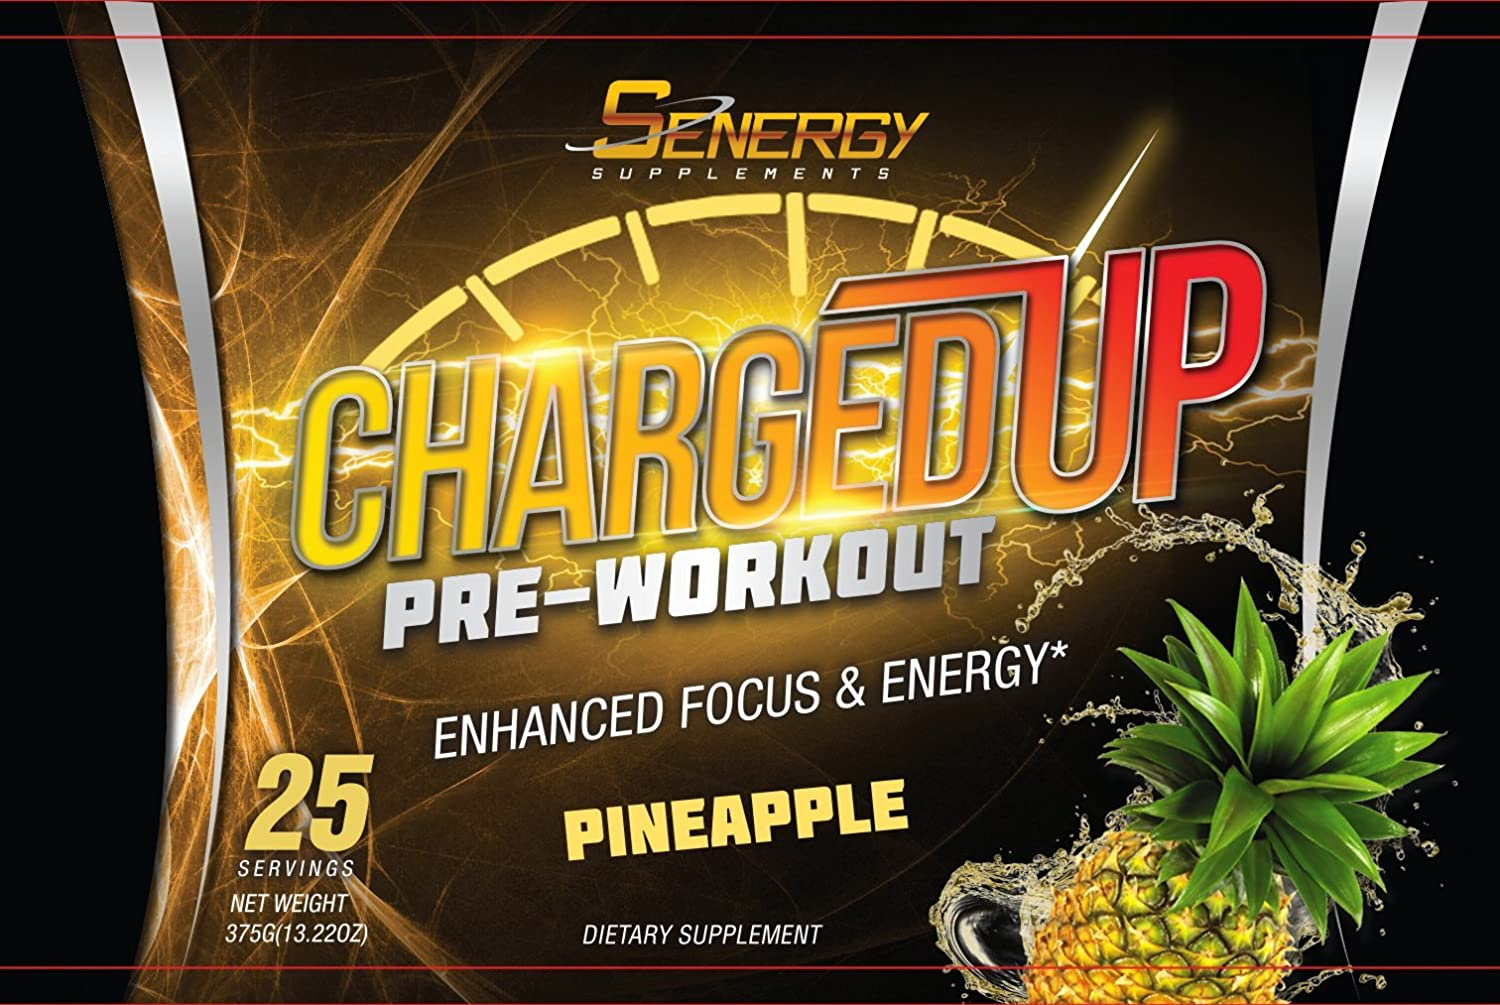 ChargedUP Pre-Workout Supplement